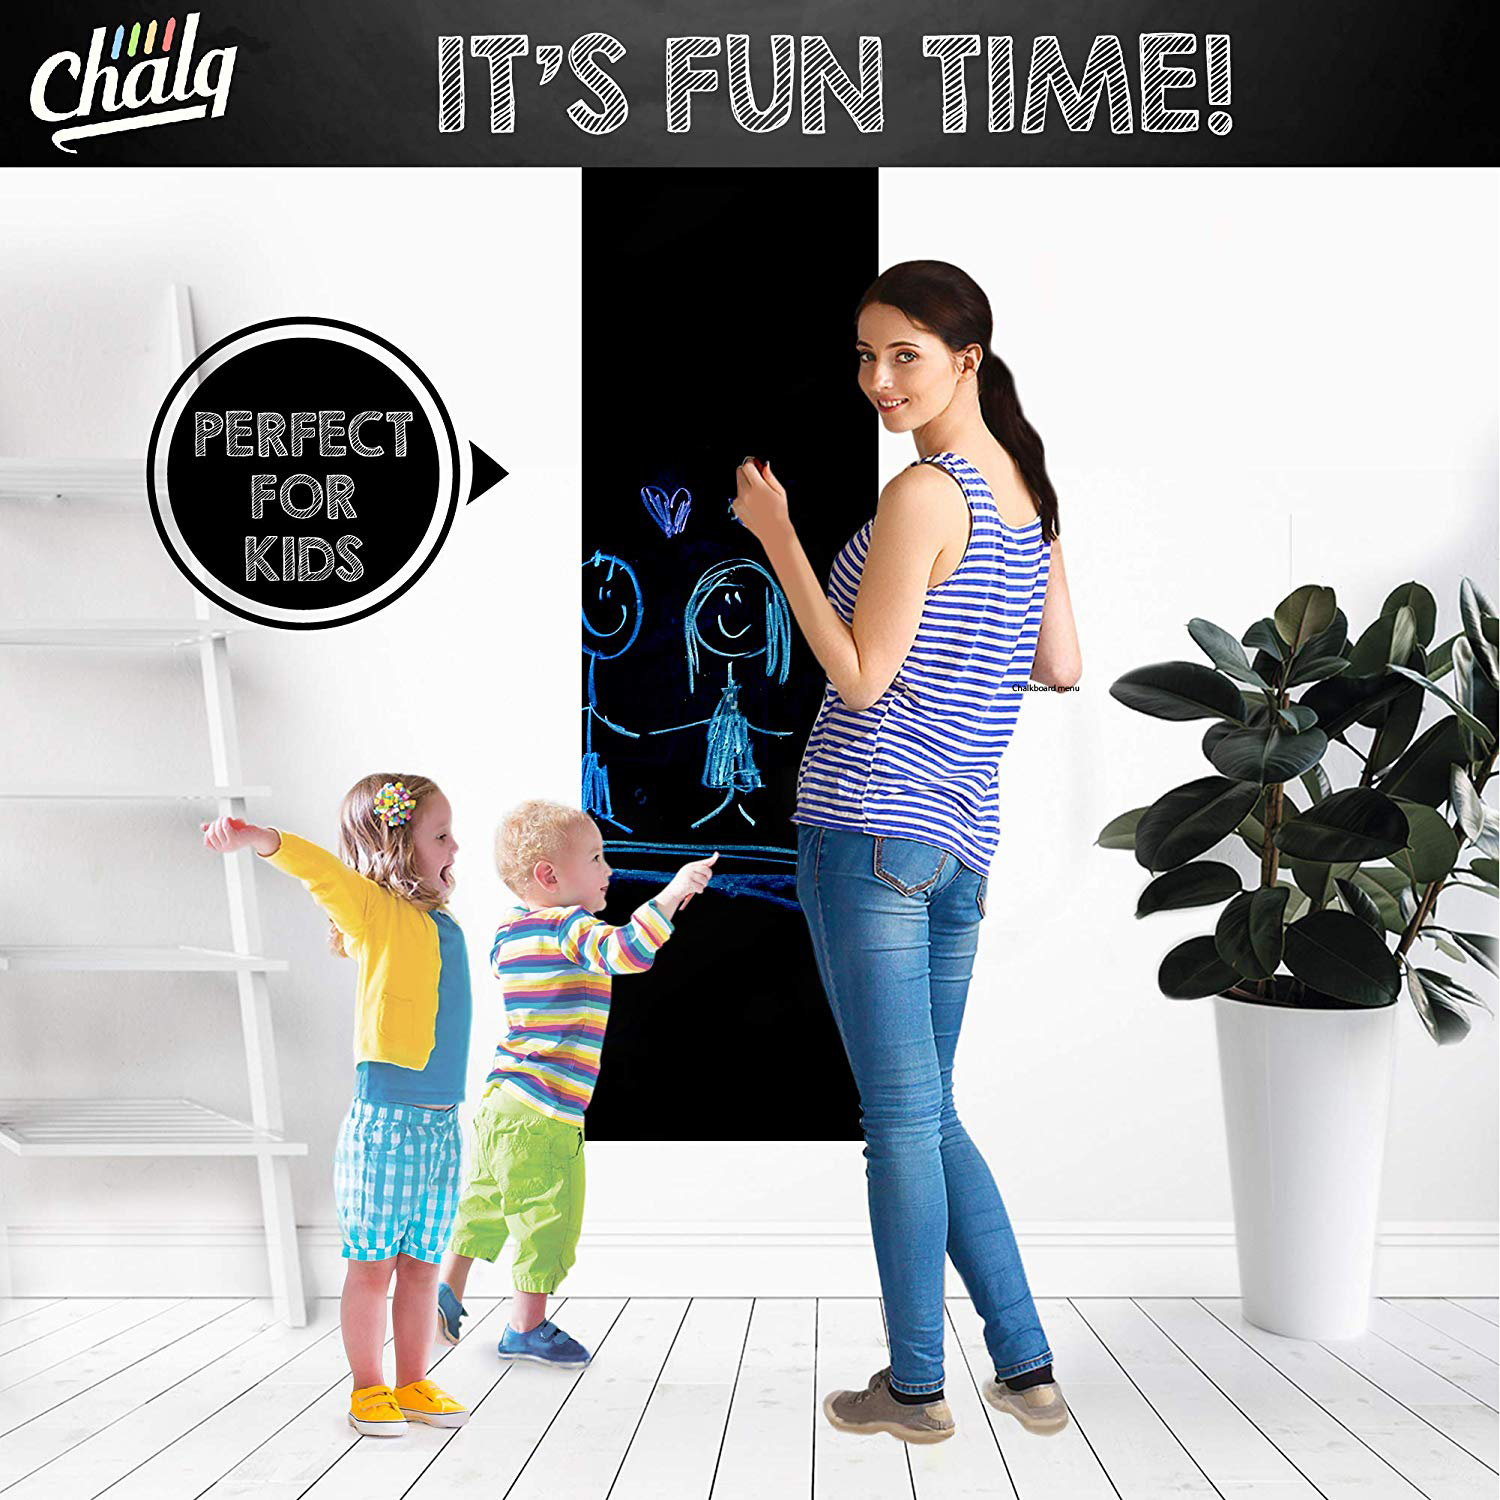 Chalkboard Contact Removable Sticker Poster photo